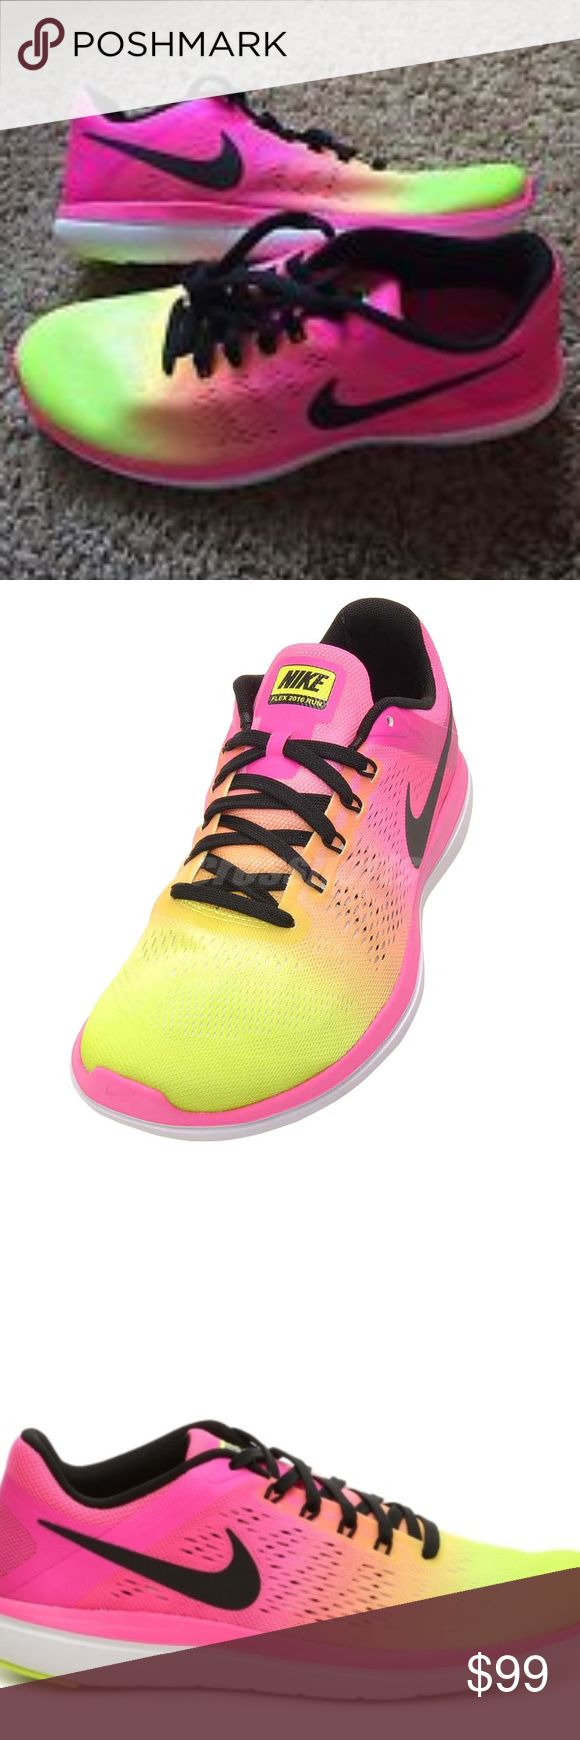 NEW ⚡️ NIKE WOMENS FLEX TRAINER SZ 9 WOMEN Nike  Flex Pink & Yellow Tennis Running shoes      new .no box no tags Nike Shoes Athletic Shoes